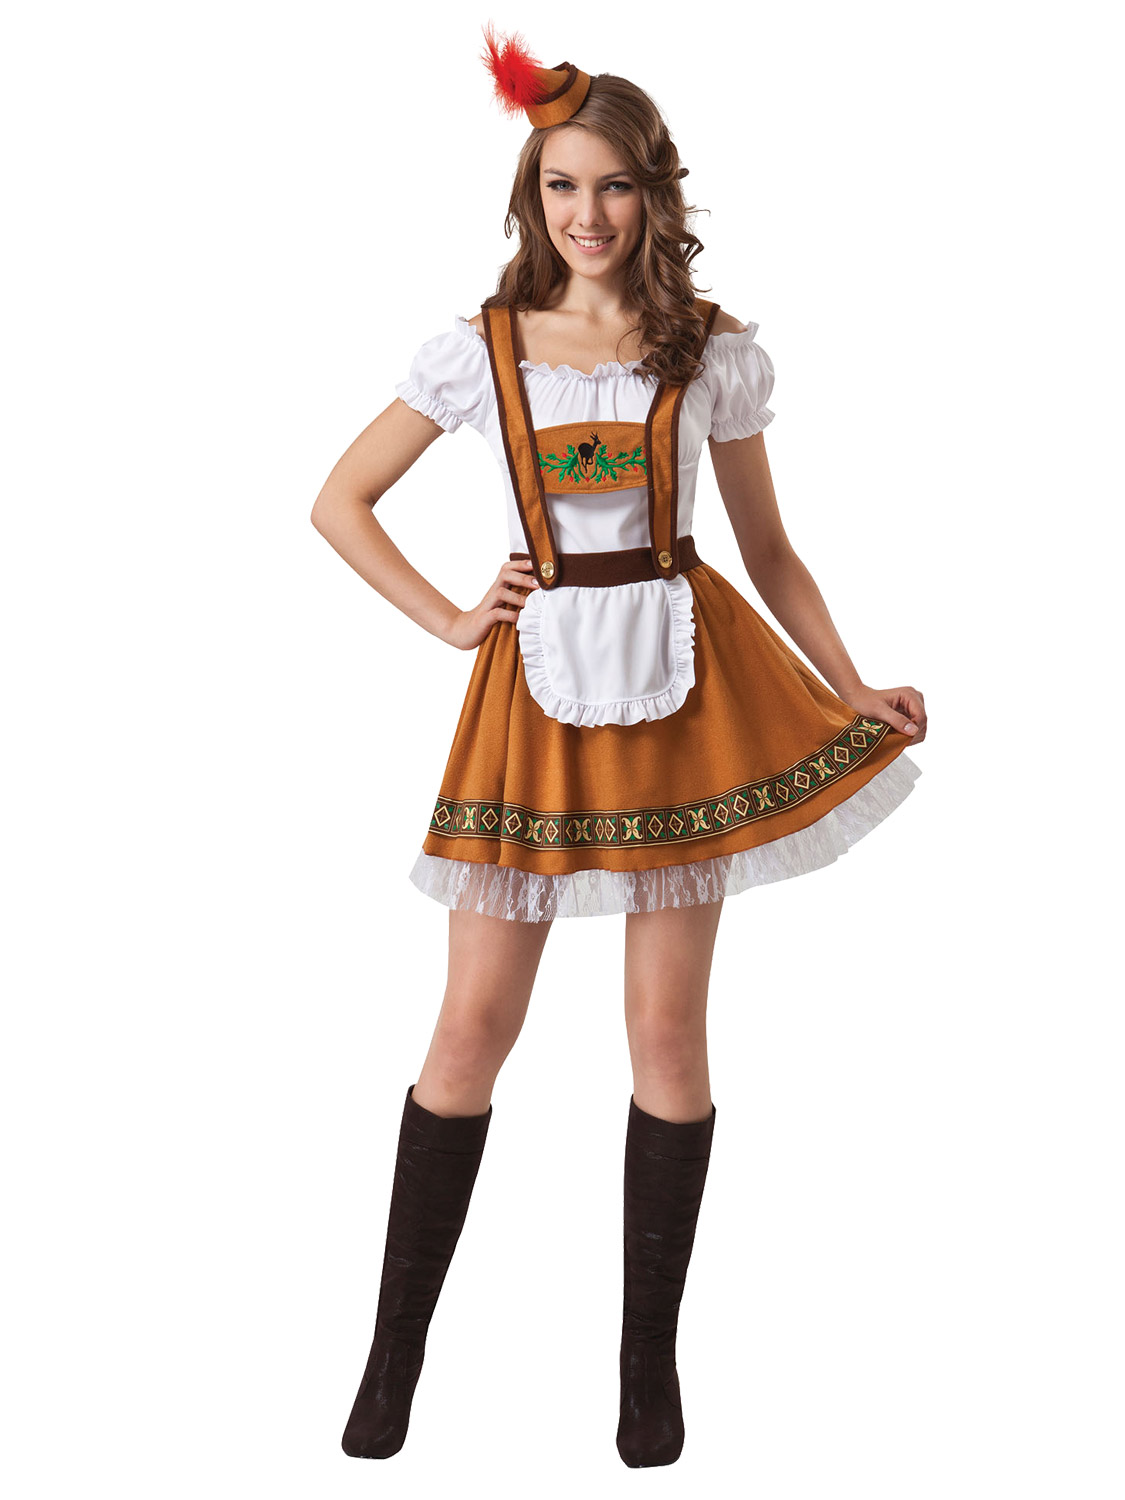 Blu//Blk German Beer Girl Costume Dress Bar Maid fo Bavarian Wench Oktoberfest